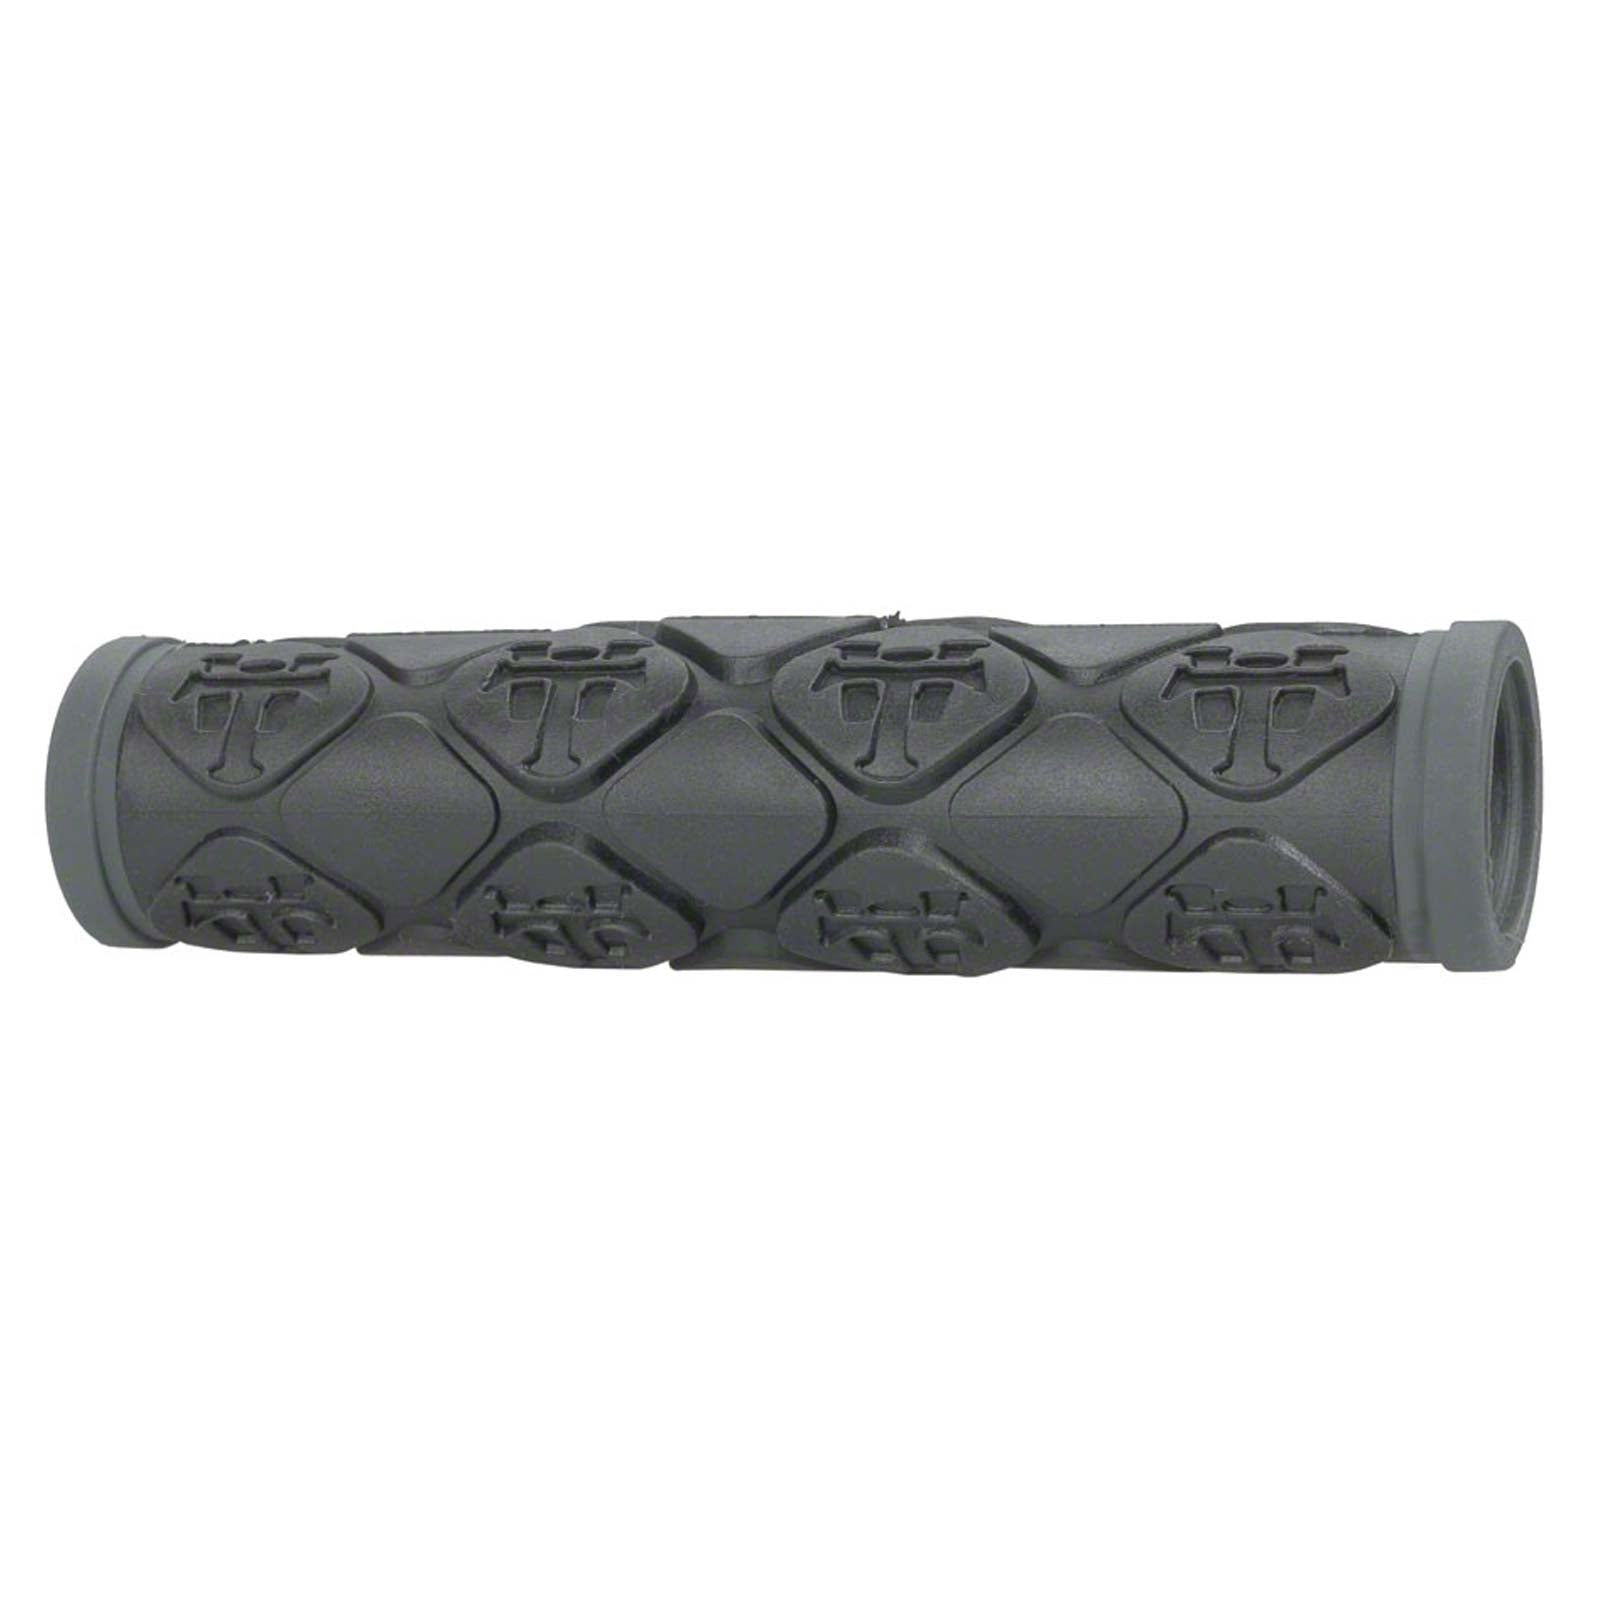 WTB Dual Compound Trail Grips Gray